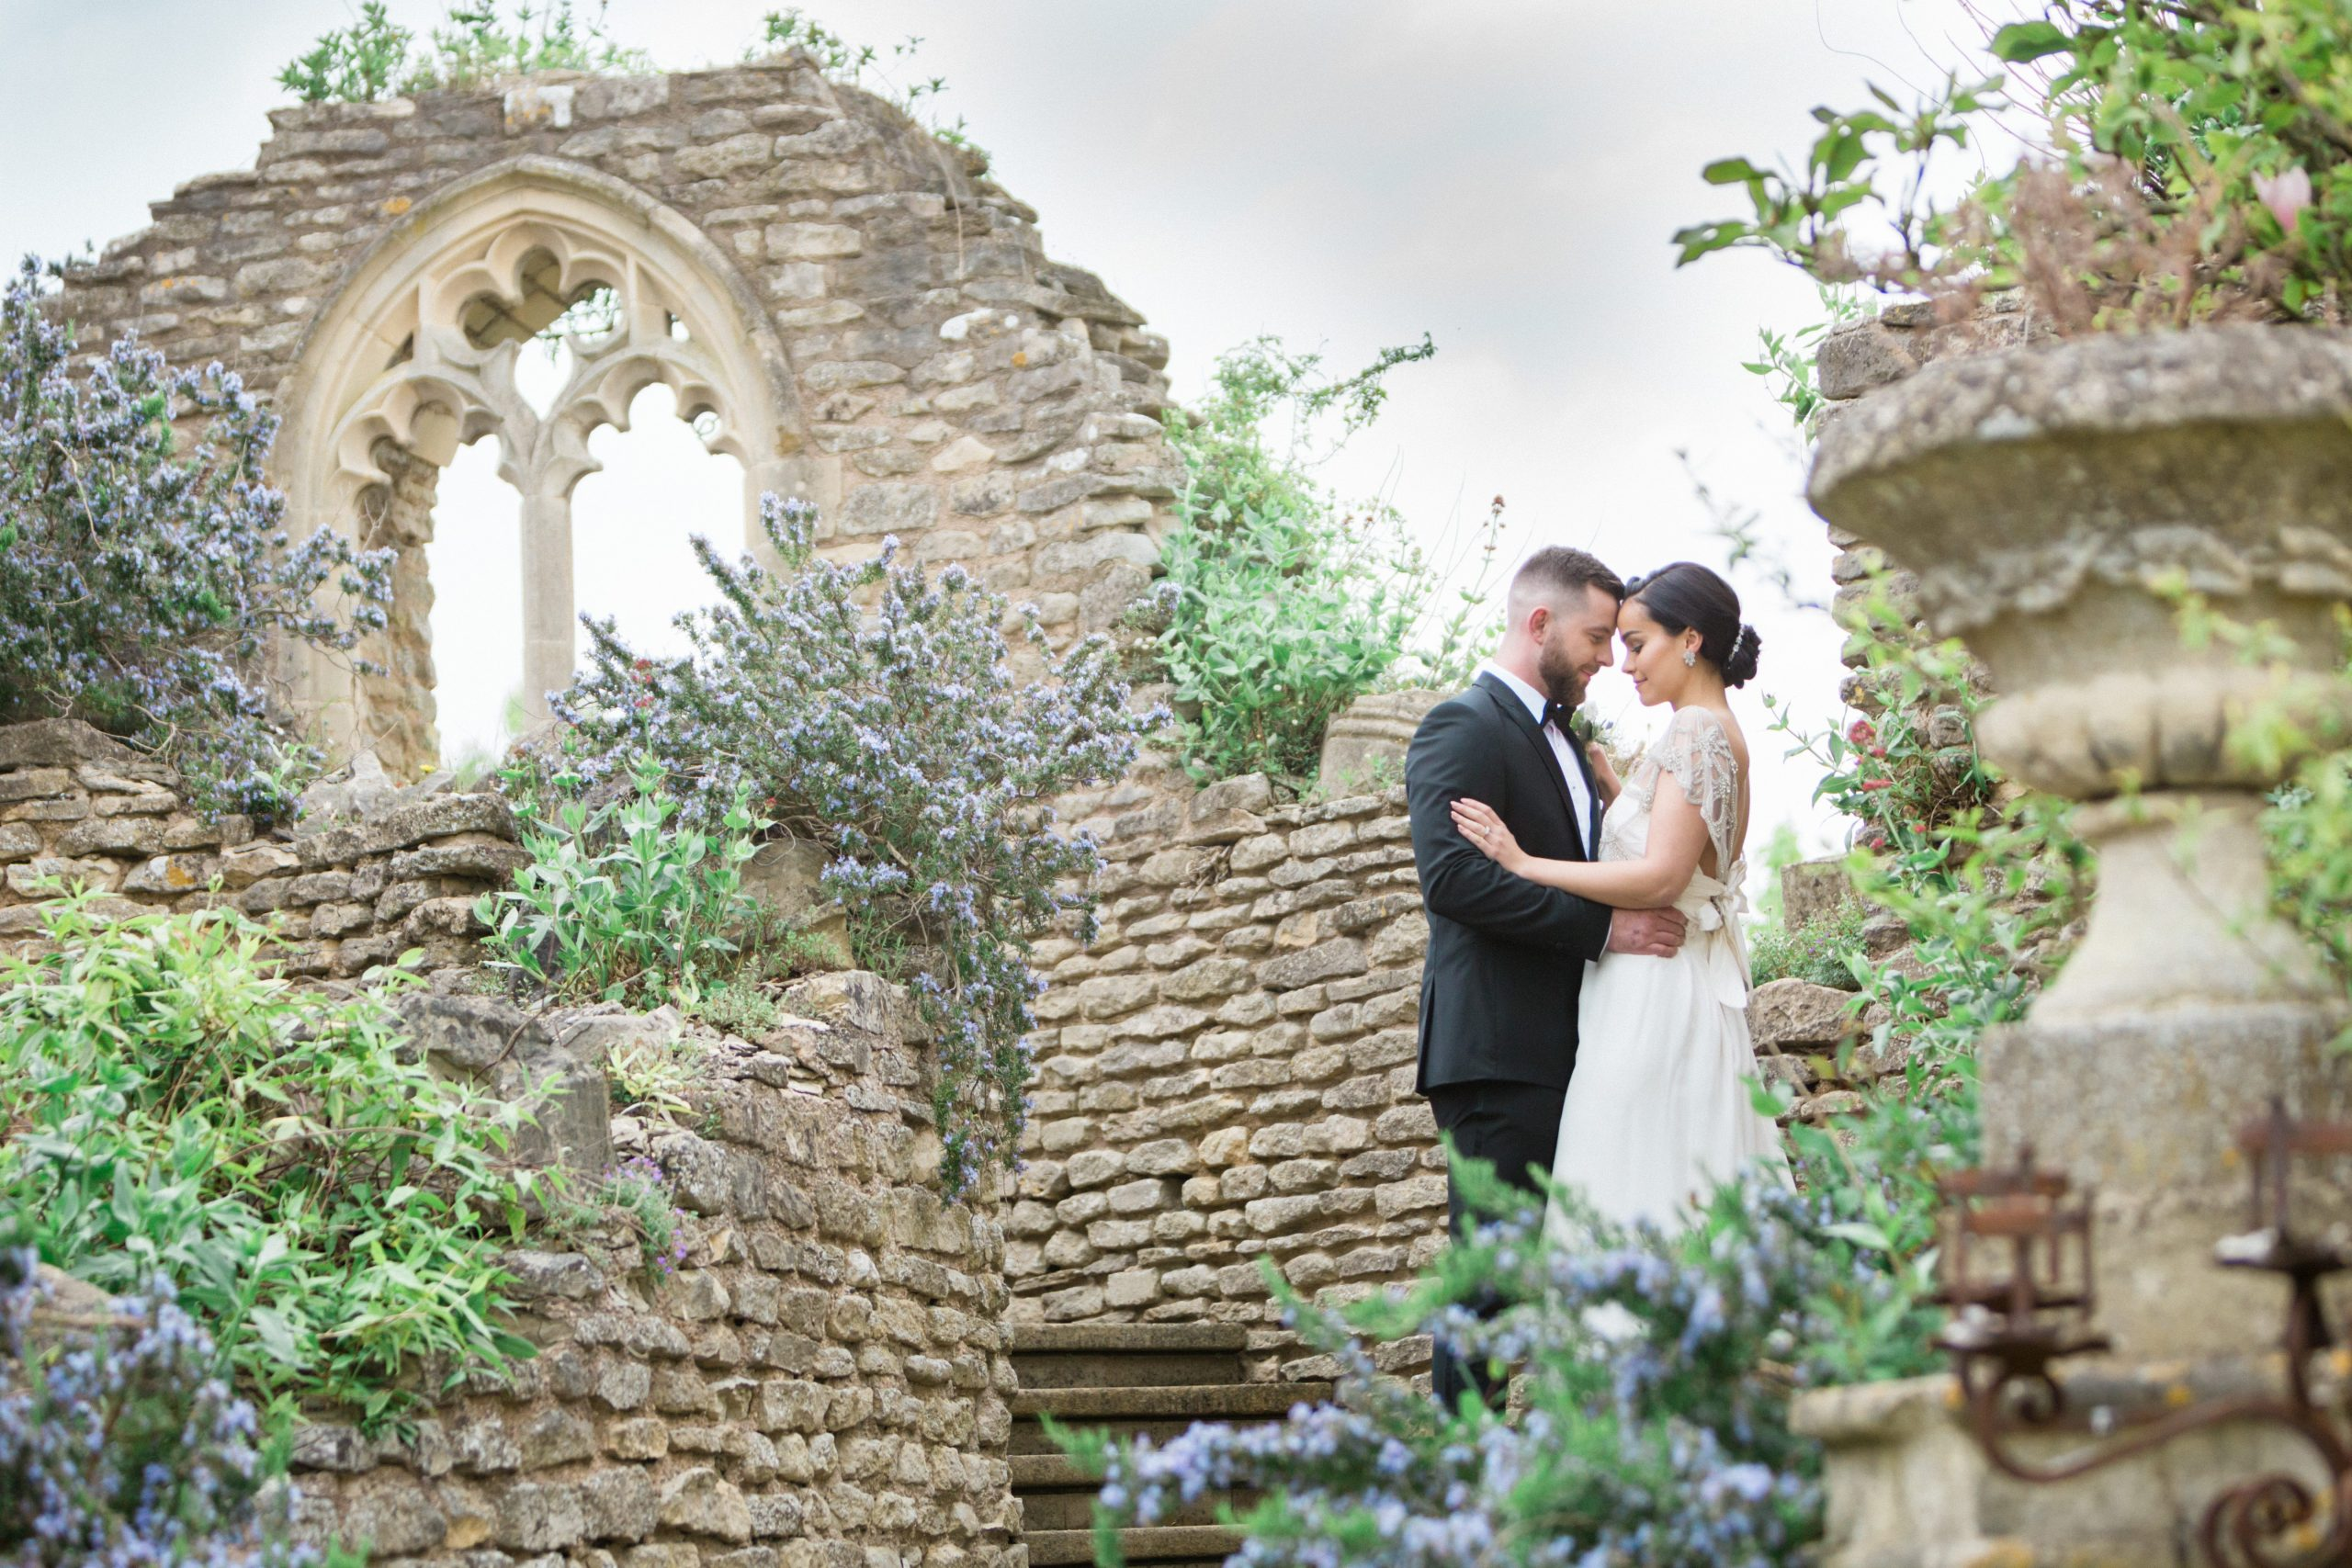 Euridge Manor wedding photographer Wiltshire